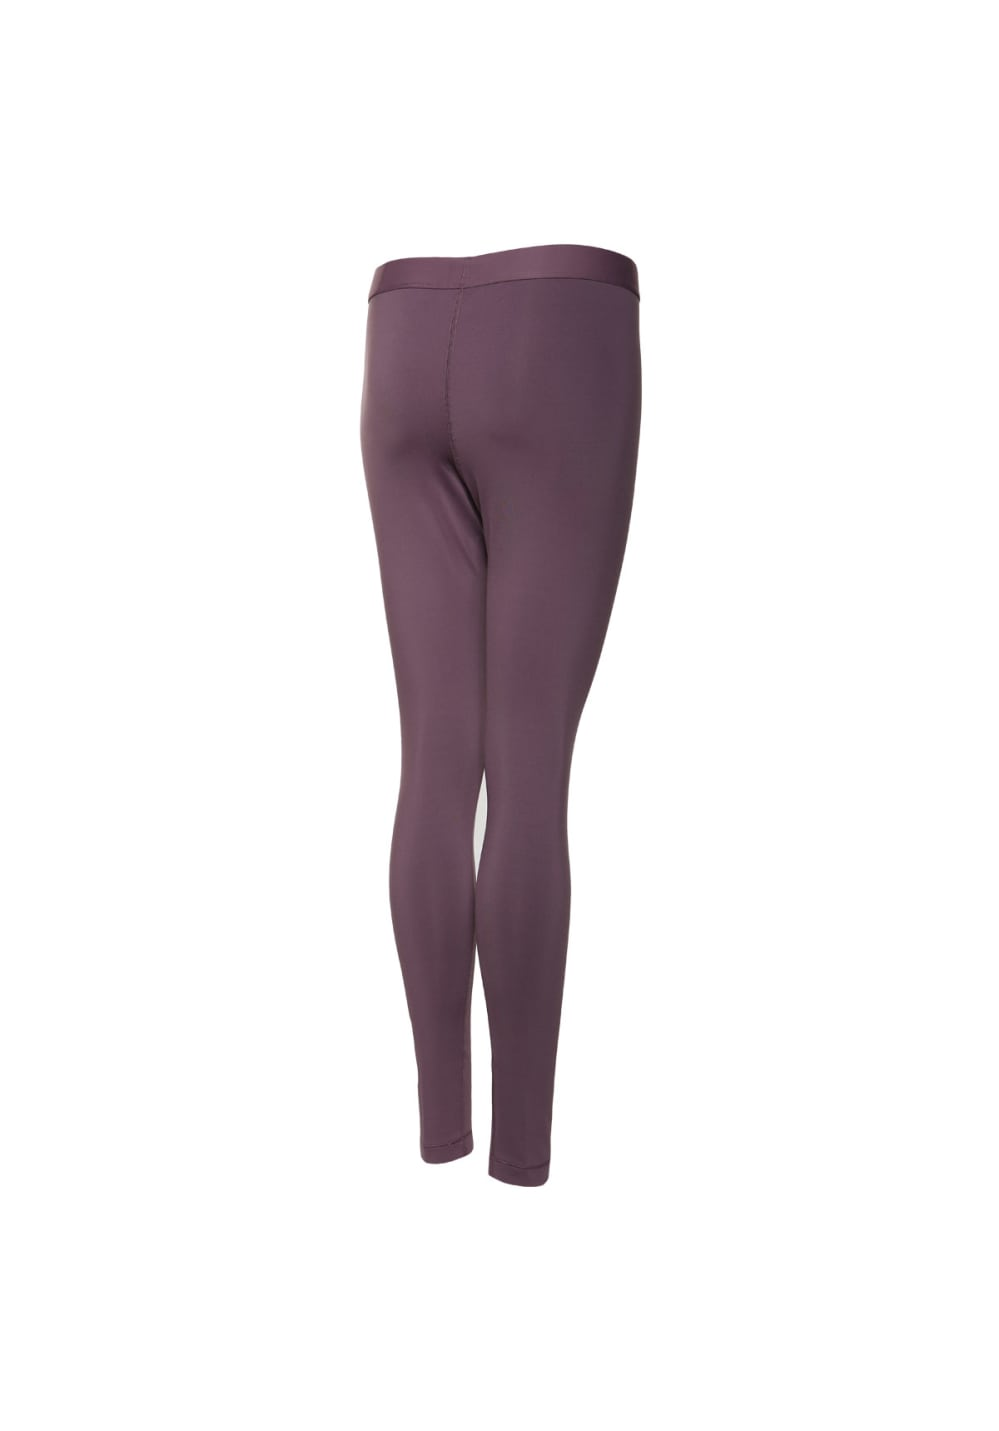 Previous. Next. -50%. This product is currently out of stock. Nike. Pro  Warm Tight - Running trousers for Women 2438464332